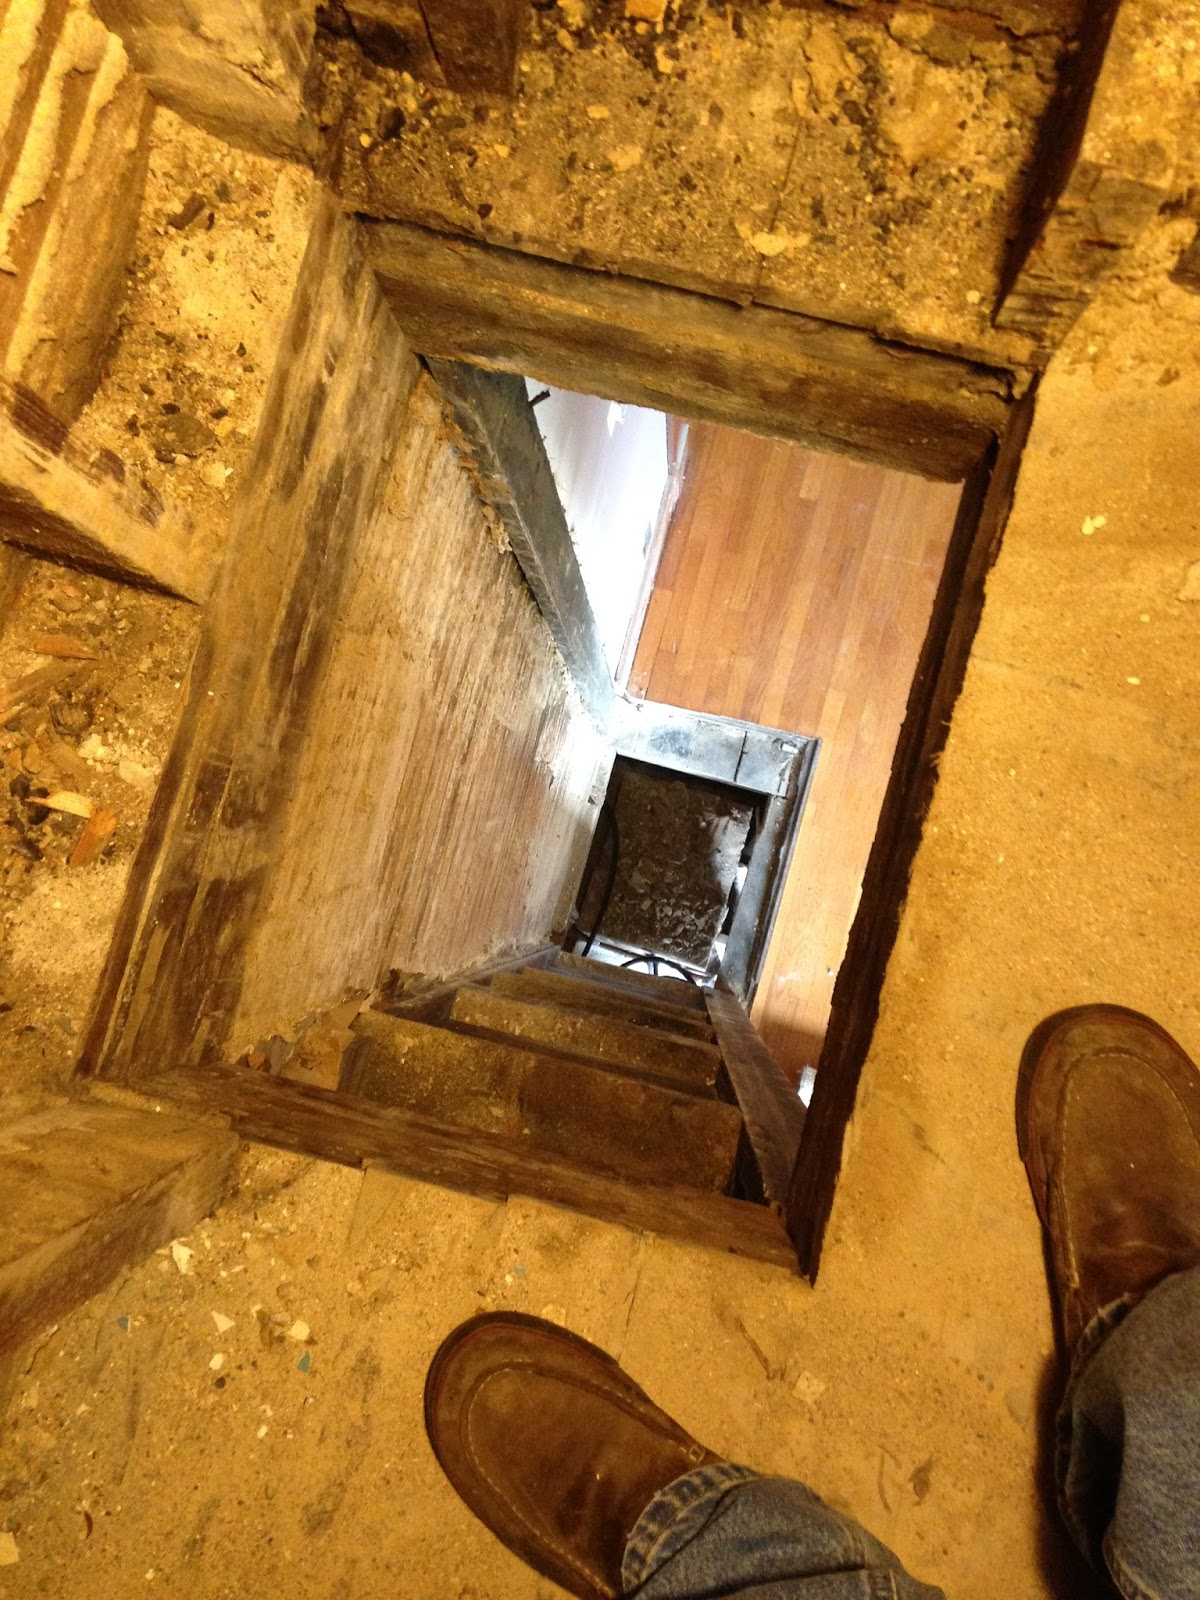 looking down the chimney hole from the second floor through the